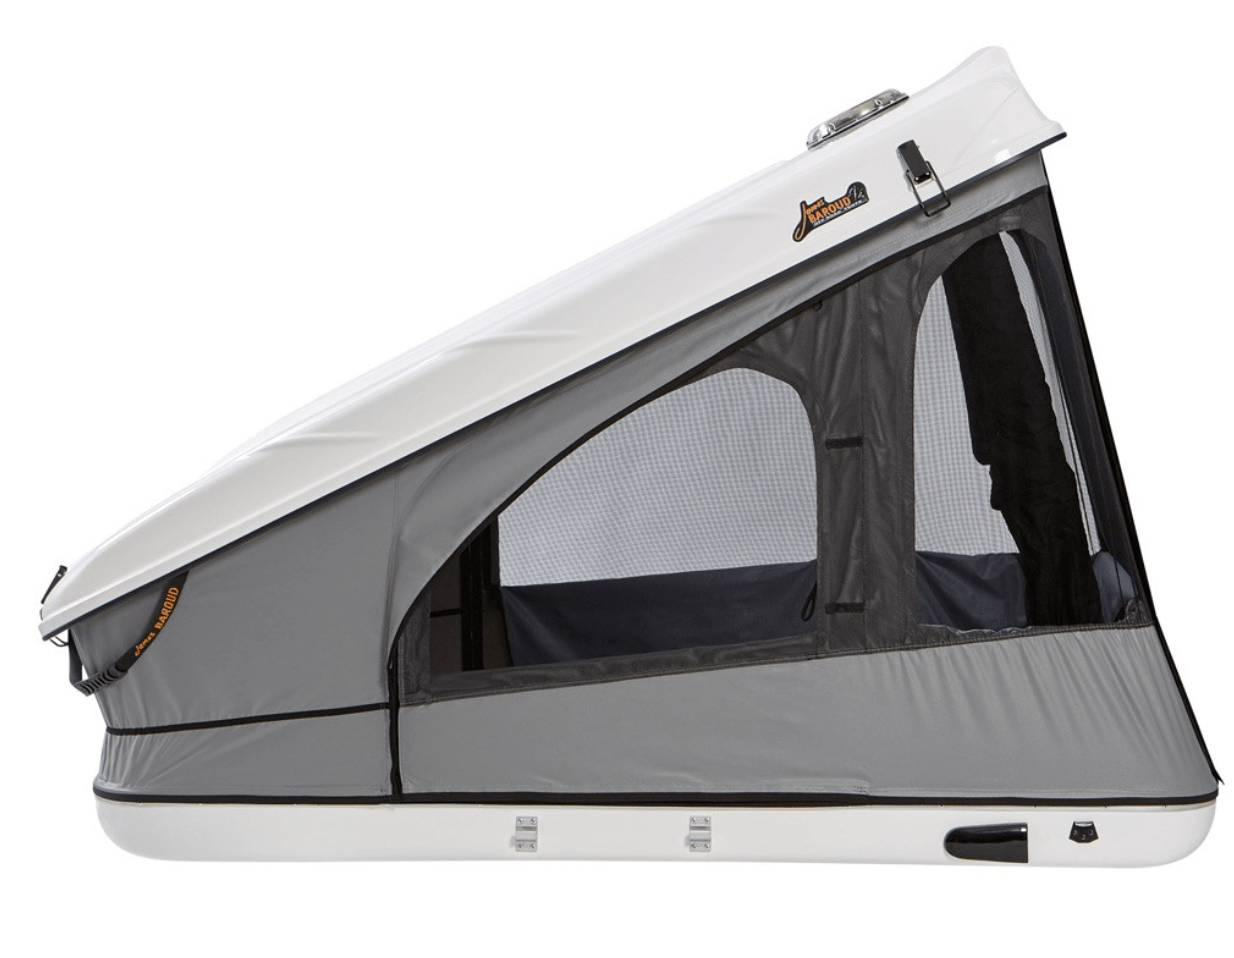 Available in two sizes ranging in price from $3400 to $4300.  sc 1 st  Expedition Portal & Buyeru0027s Guide: Hard Shell Roof Top Tents u2013 Expedition Portal